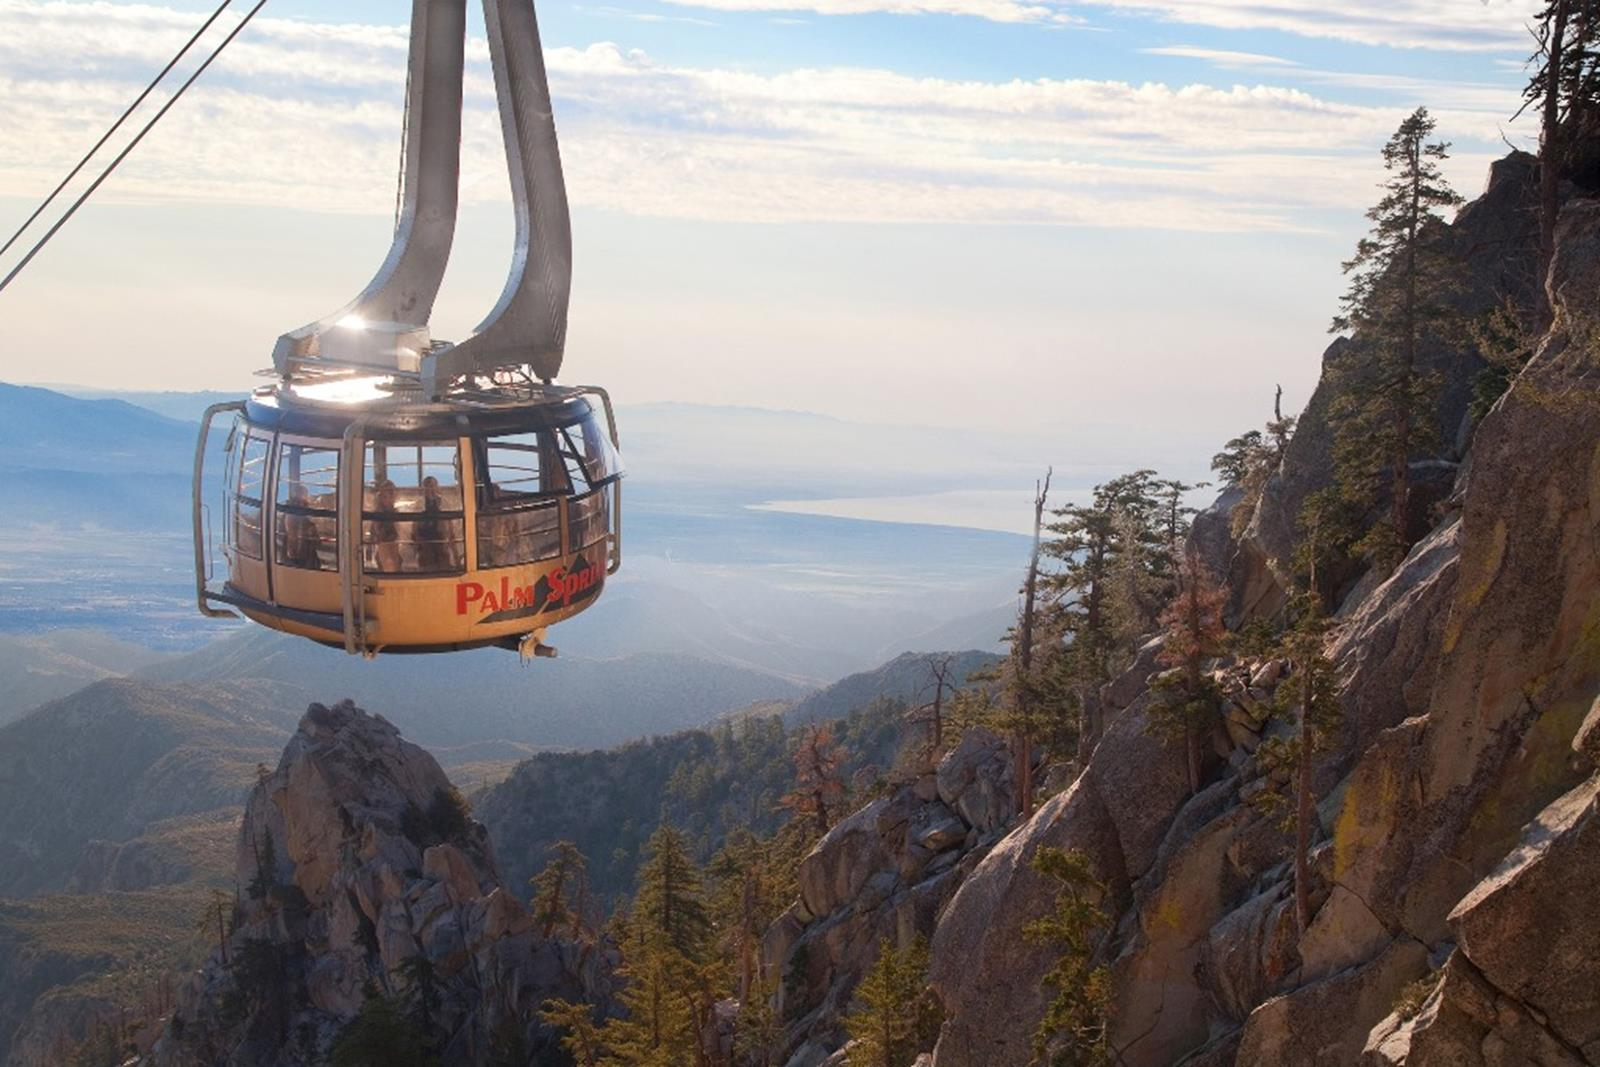 Palm Springs Aerial Tramway with Salton Sea. Credit: Palm Springs Aerial Tramway